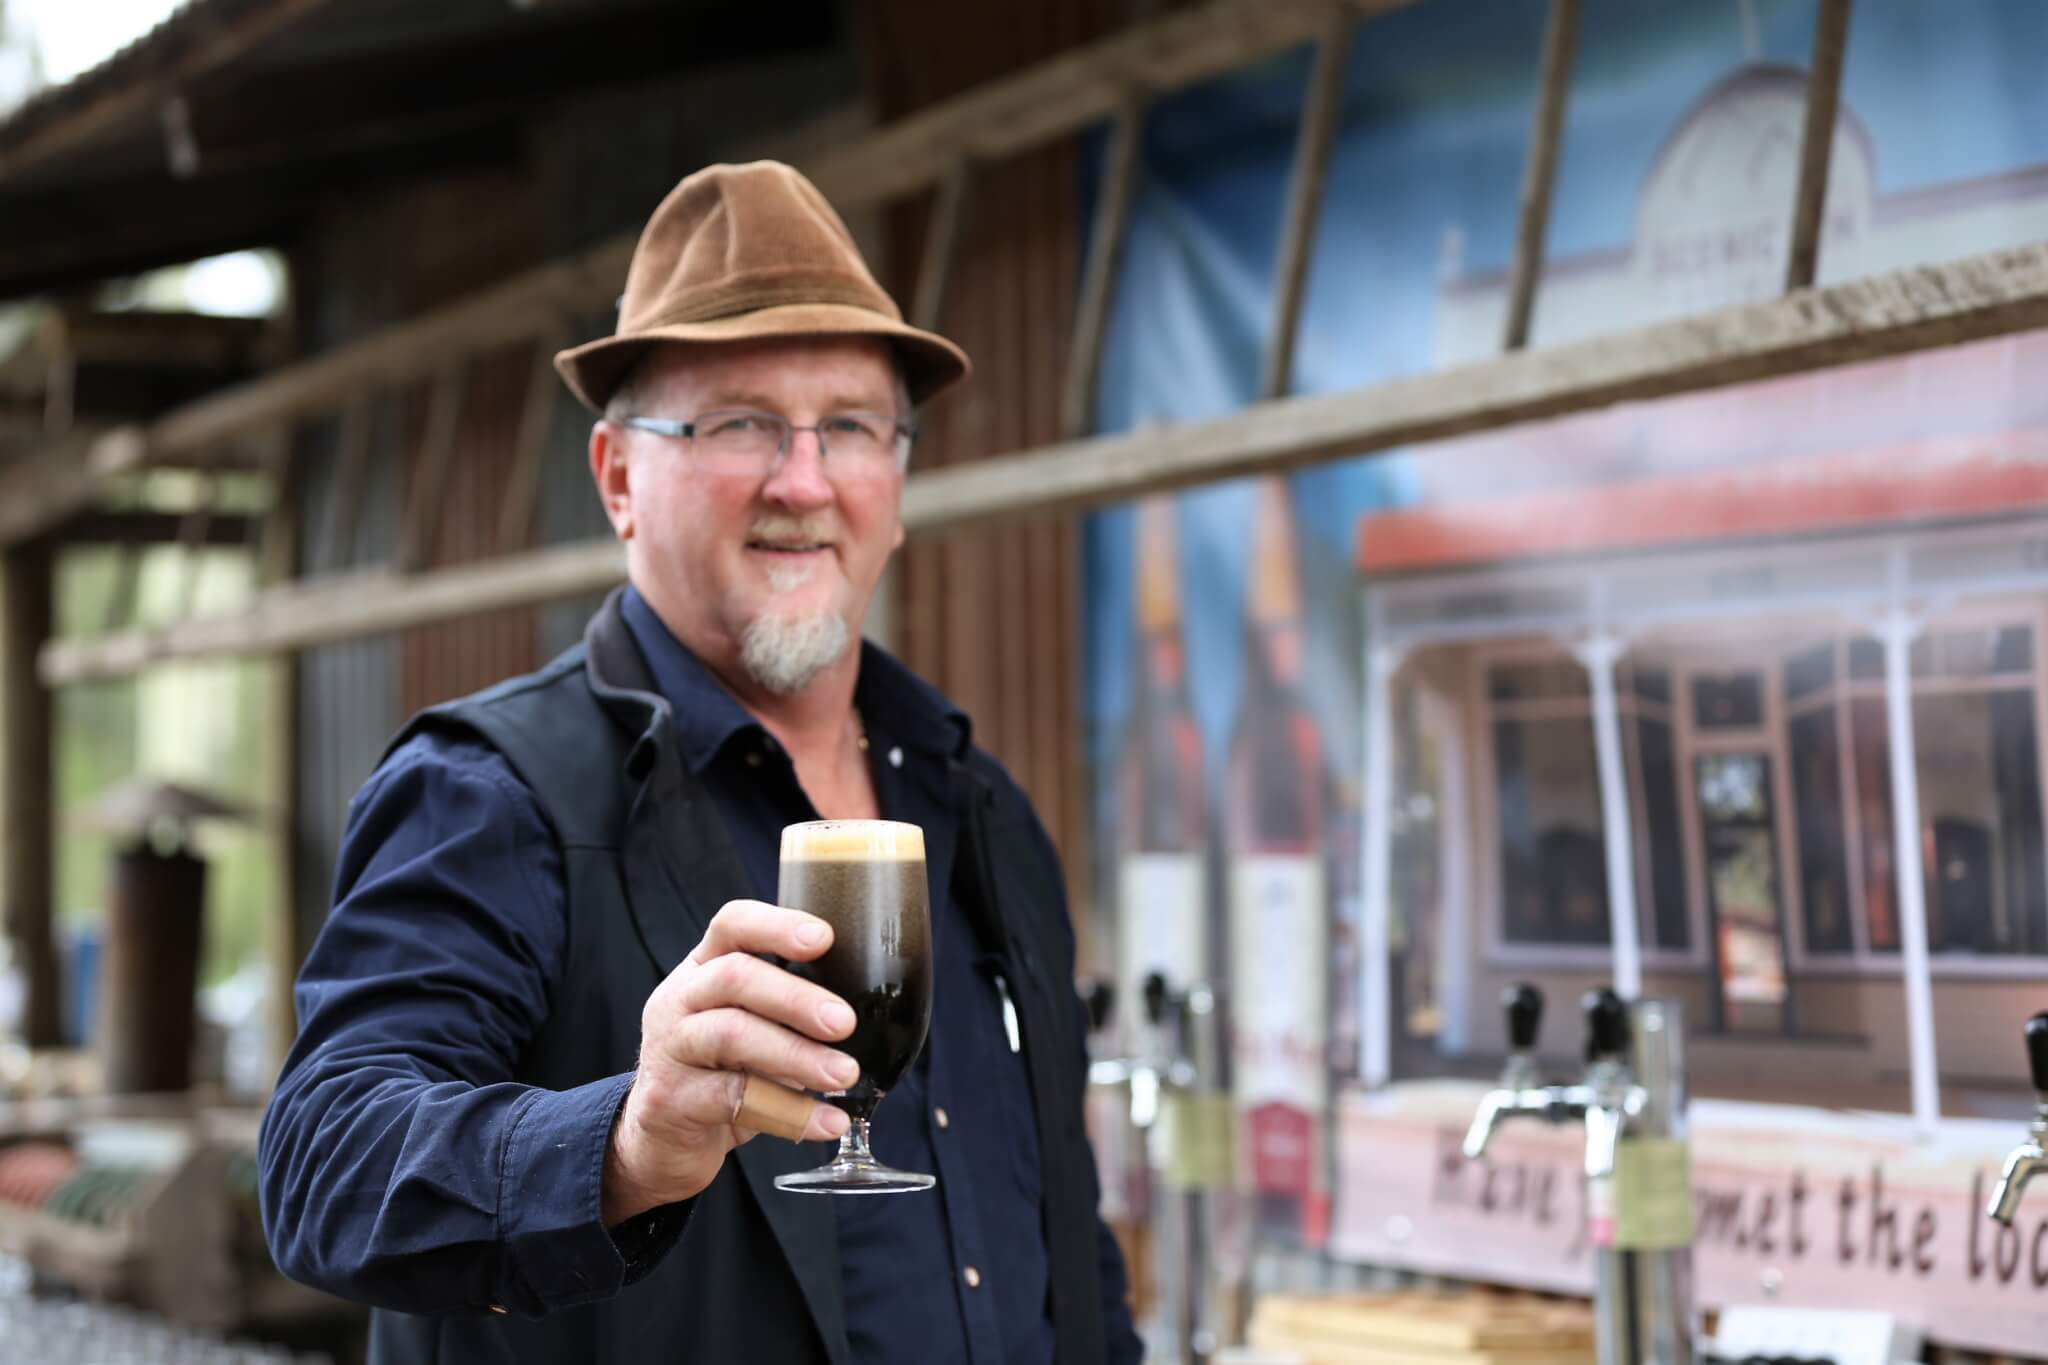 Milking local farms for new beer brew